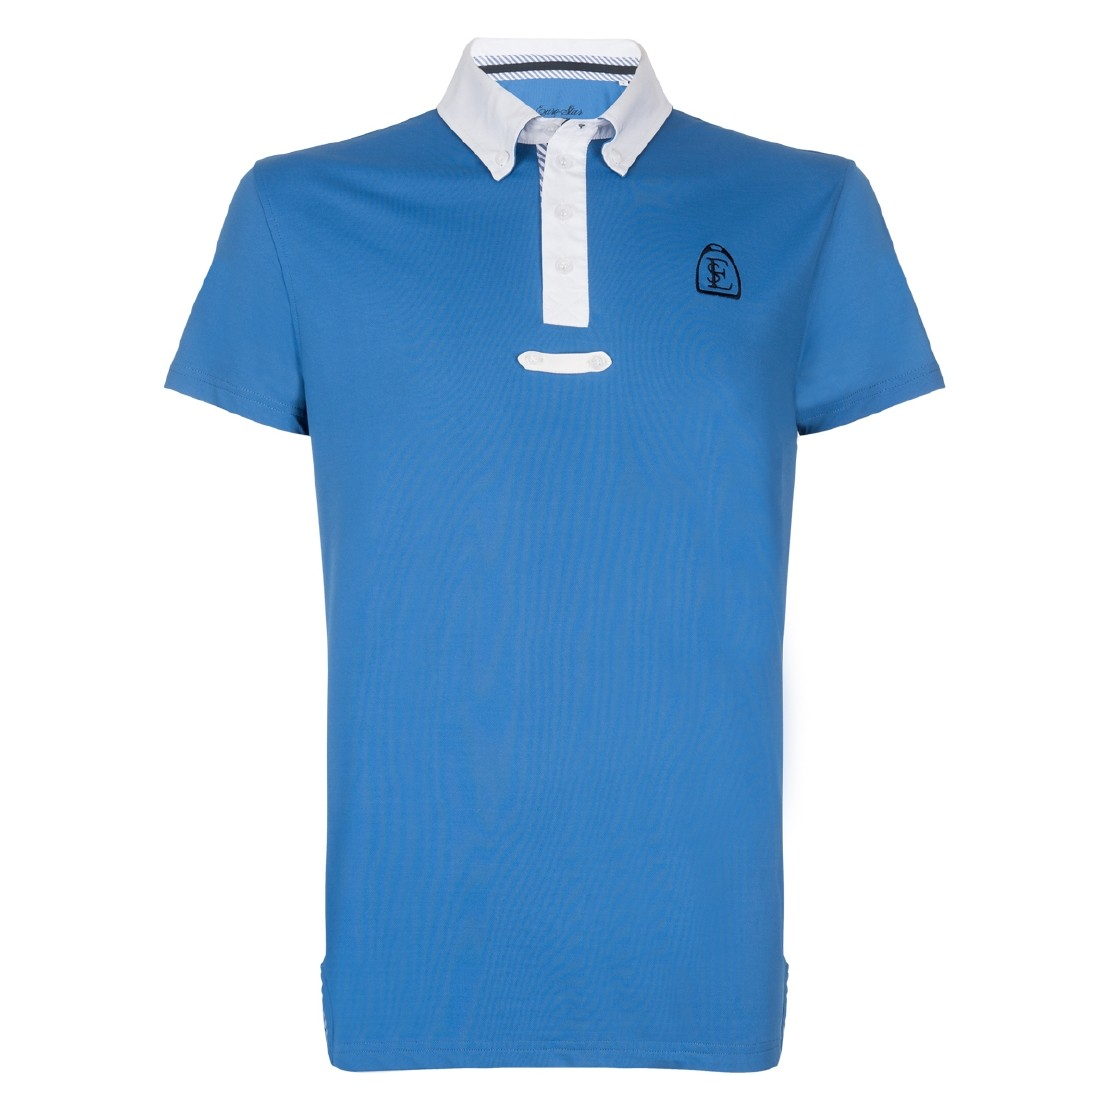 Turniershirt Philippe L Dutch Blue